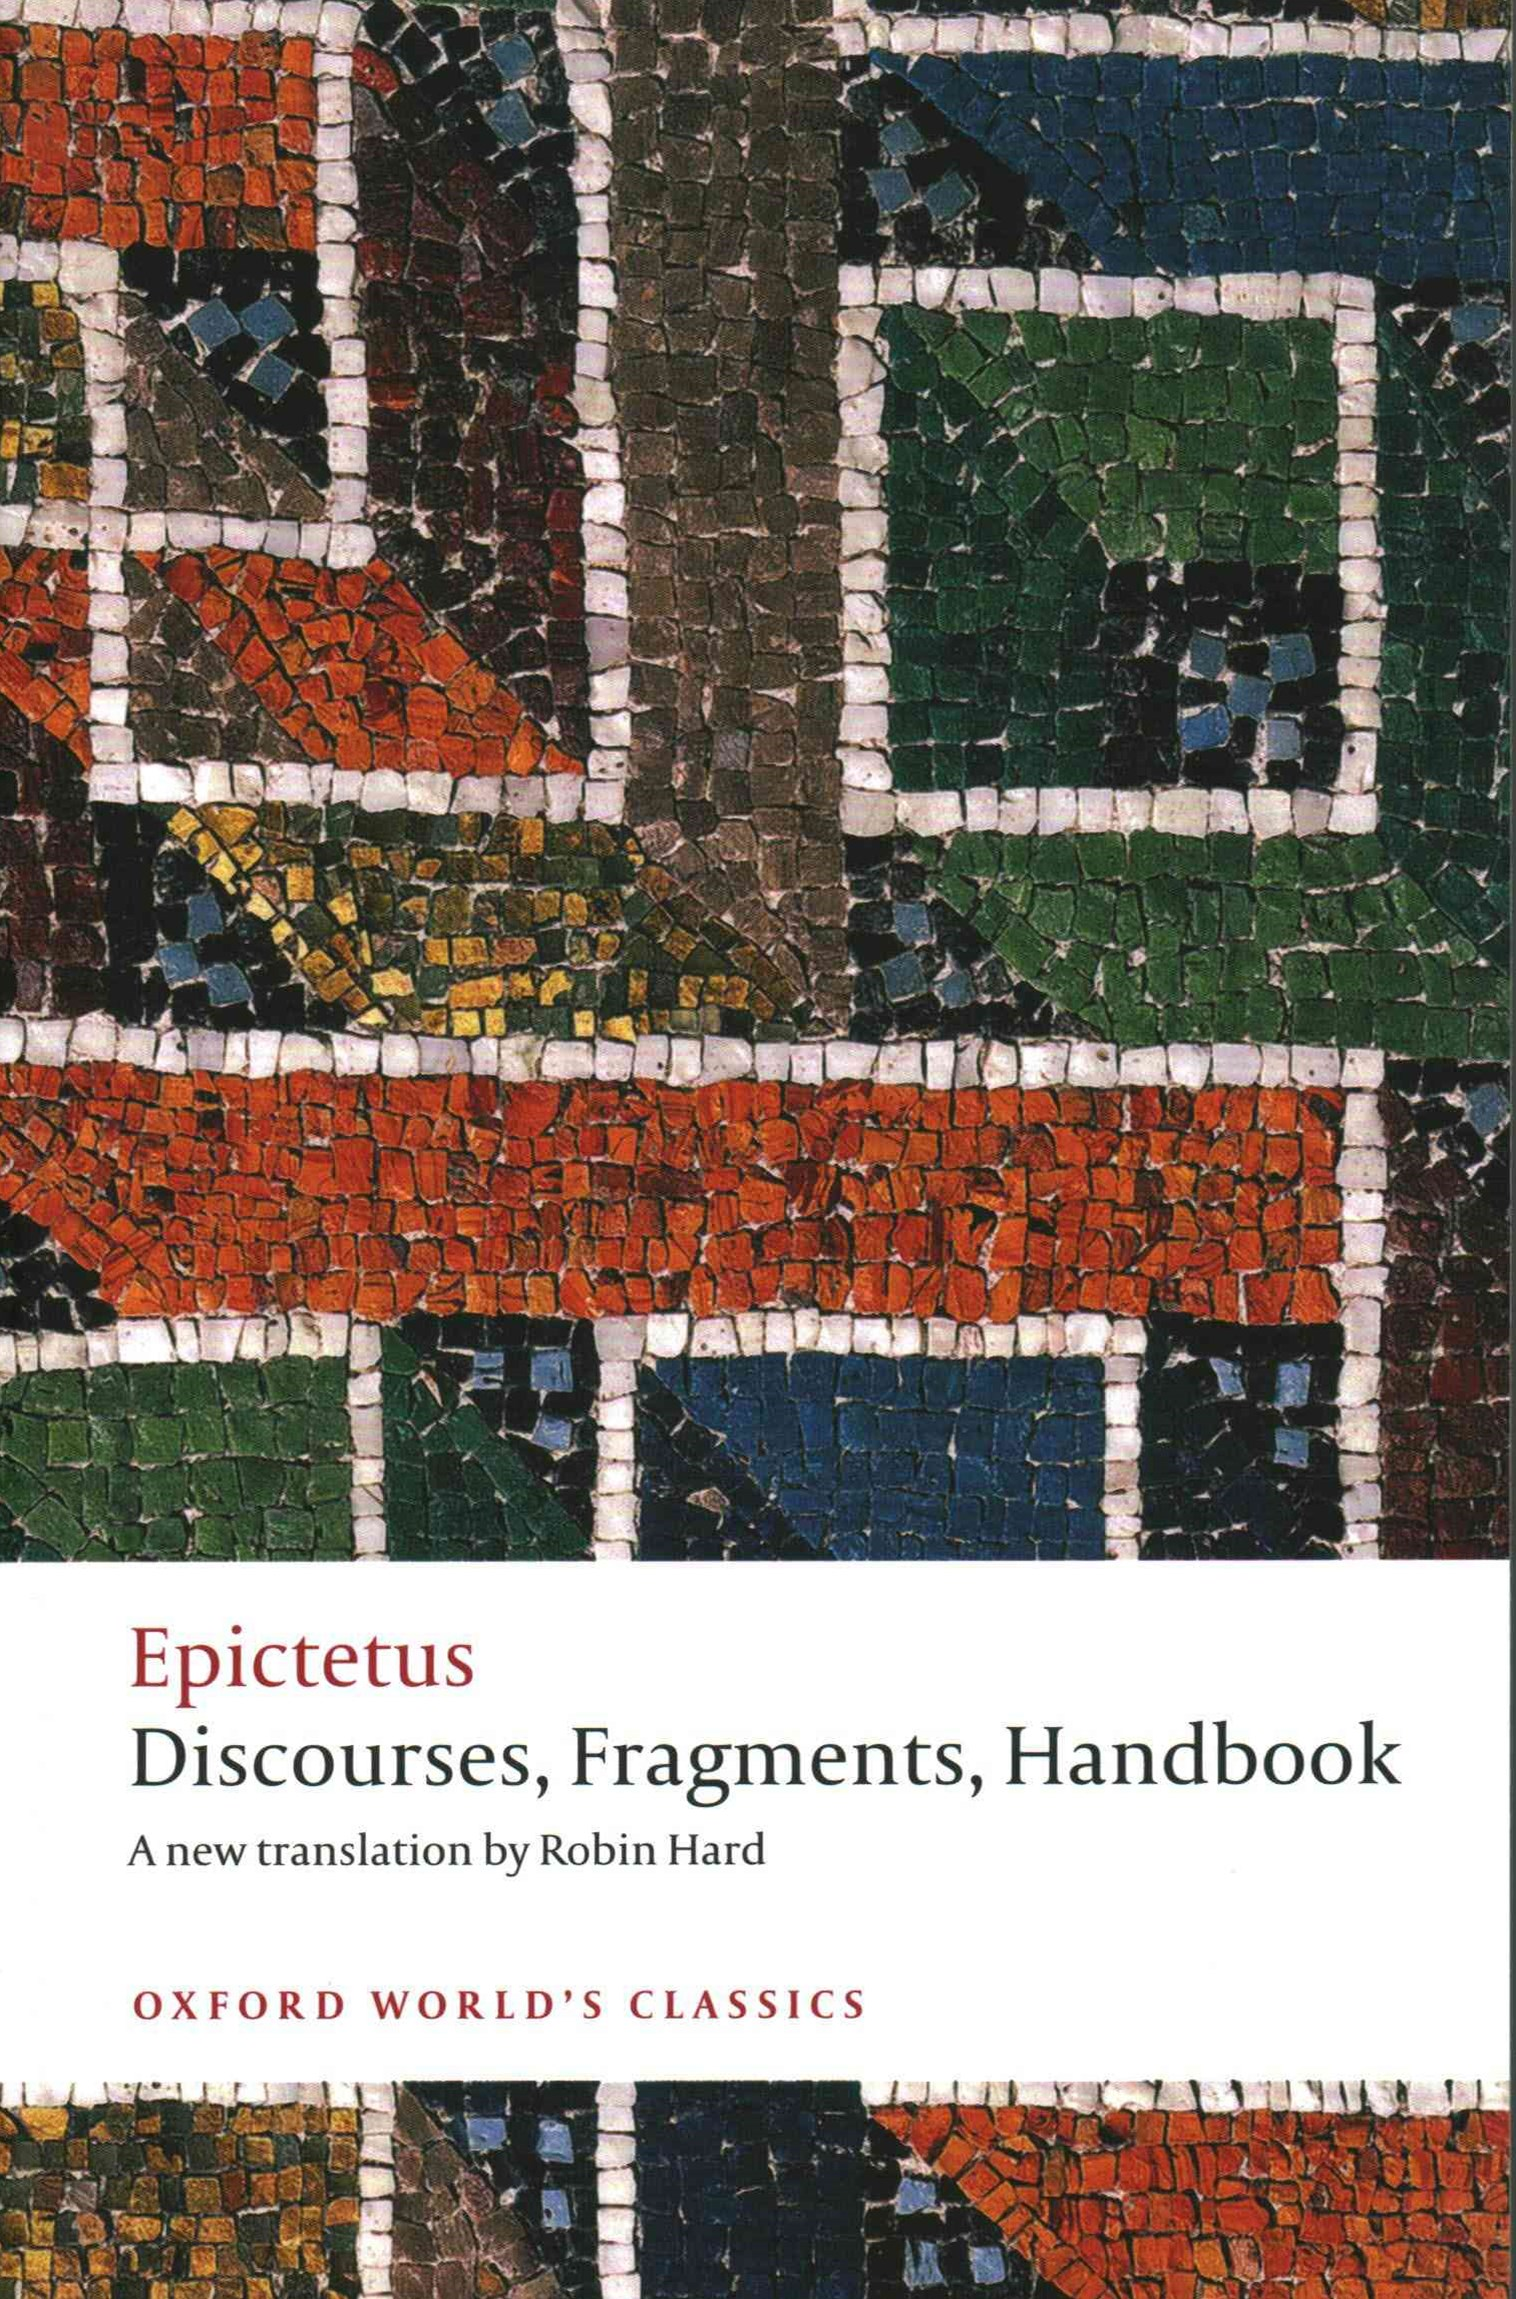 Discourses, Fragments, Handbook